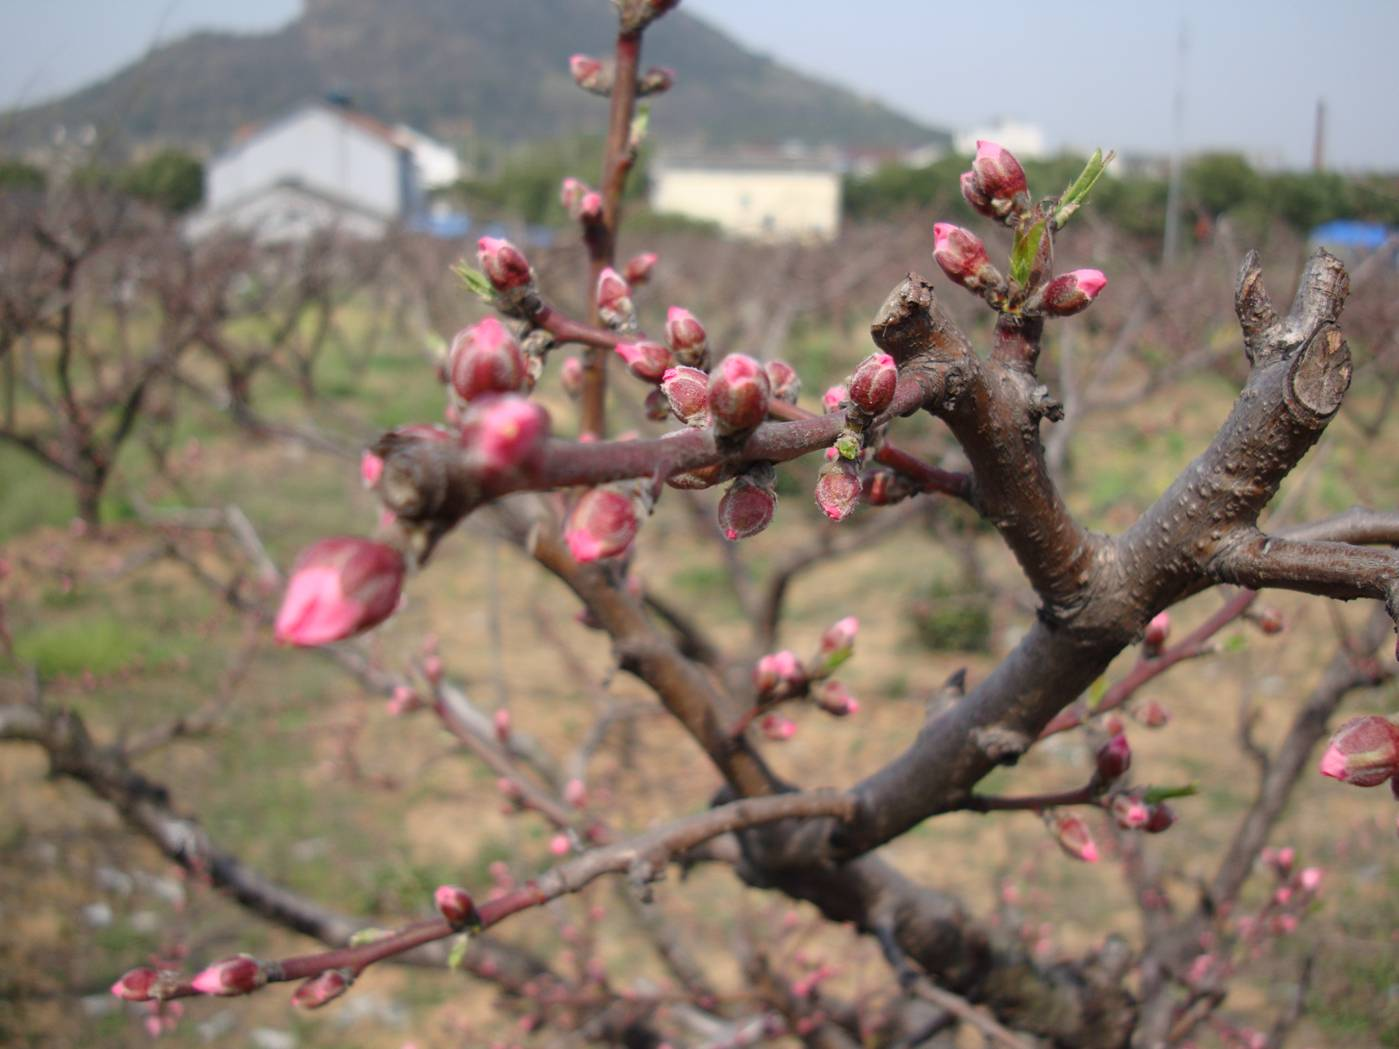 Picture:  Bursting peach blossoms, not yet out in all their glory.  Yang Shan, Wuxi, China